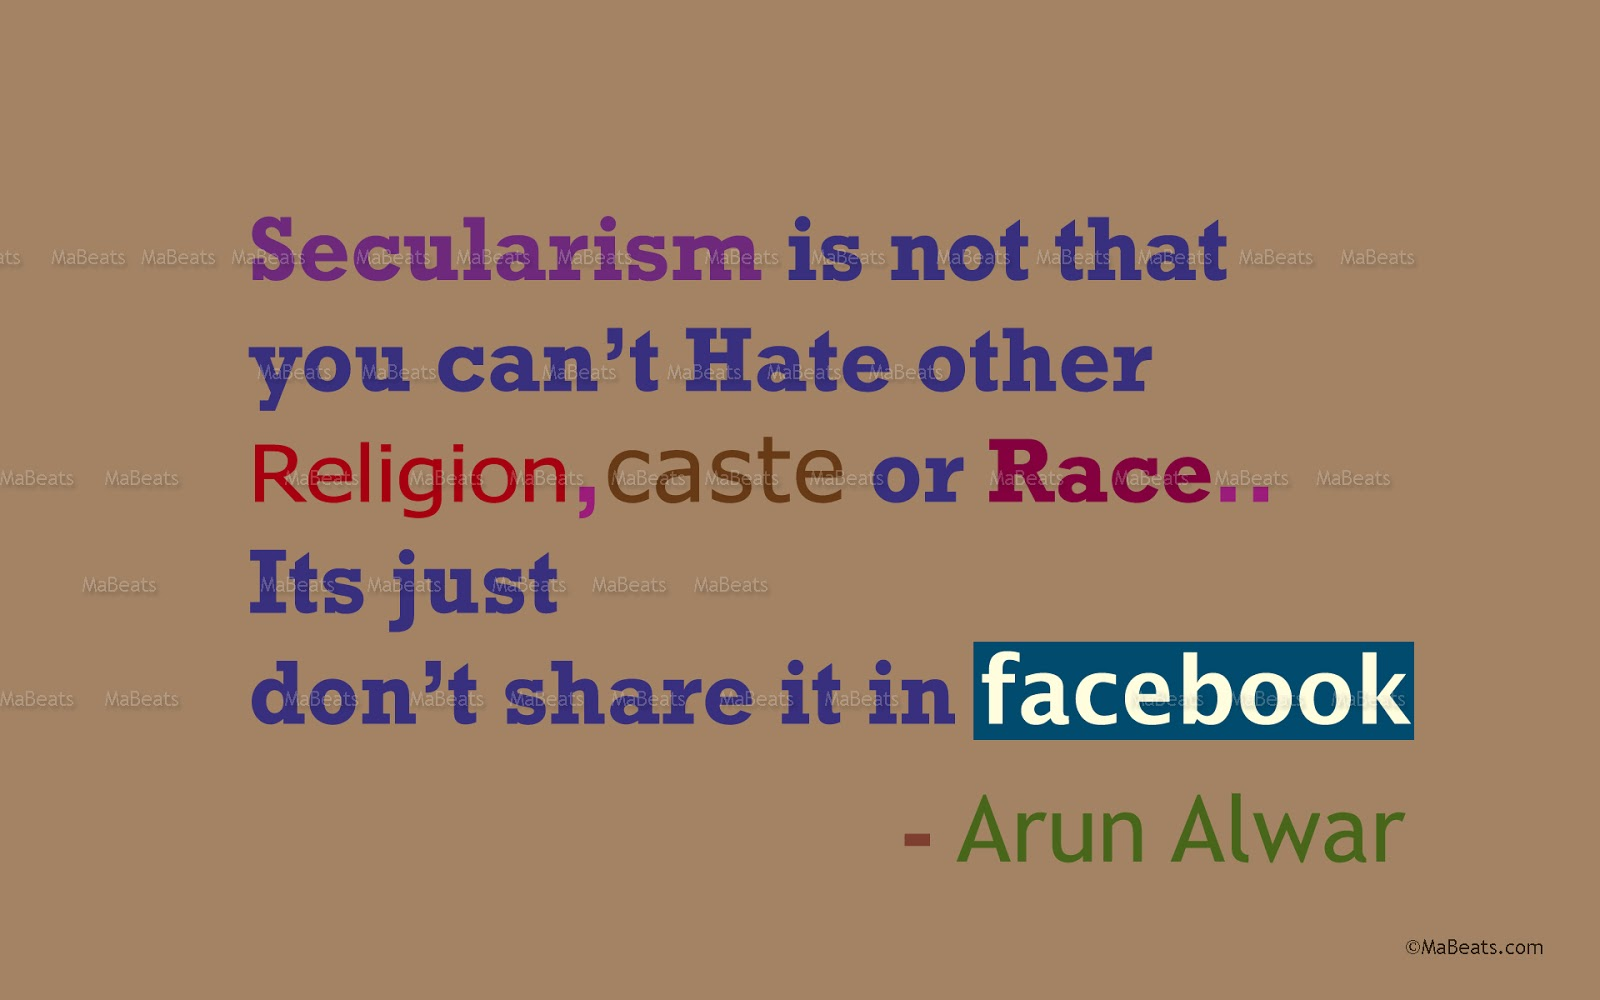 Secularism in Facebook - A Facebook Quote